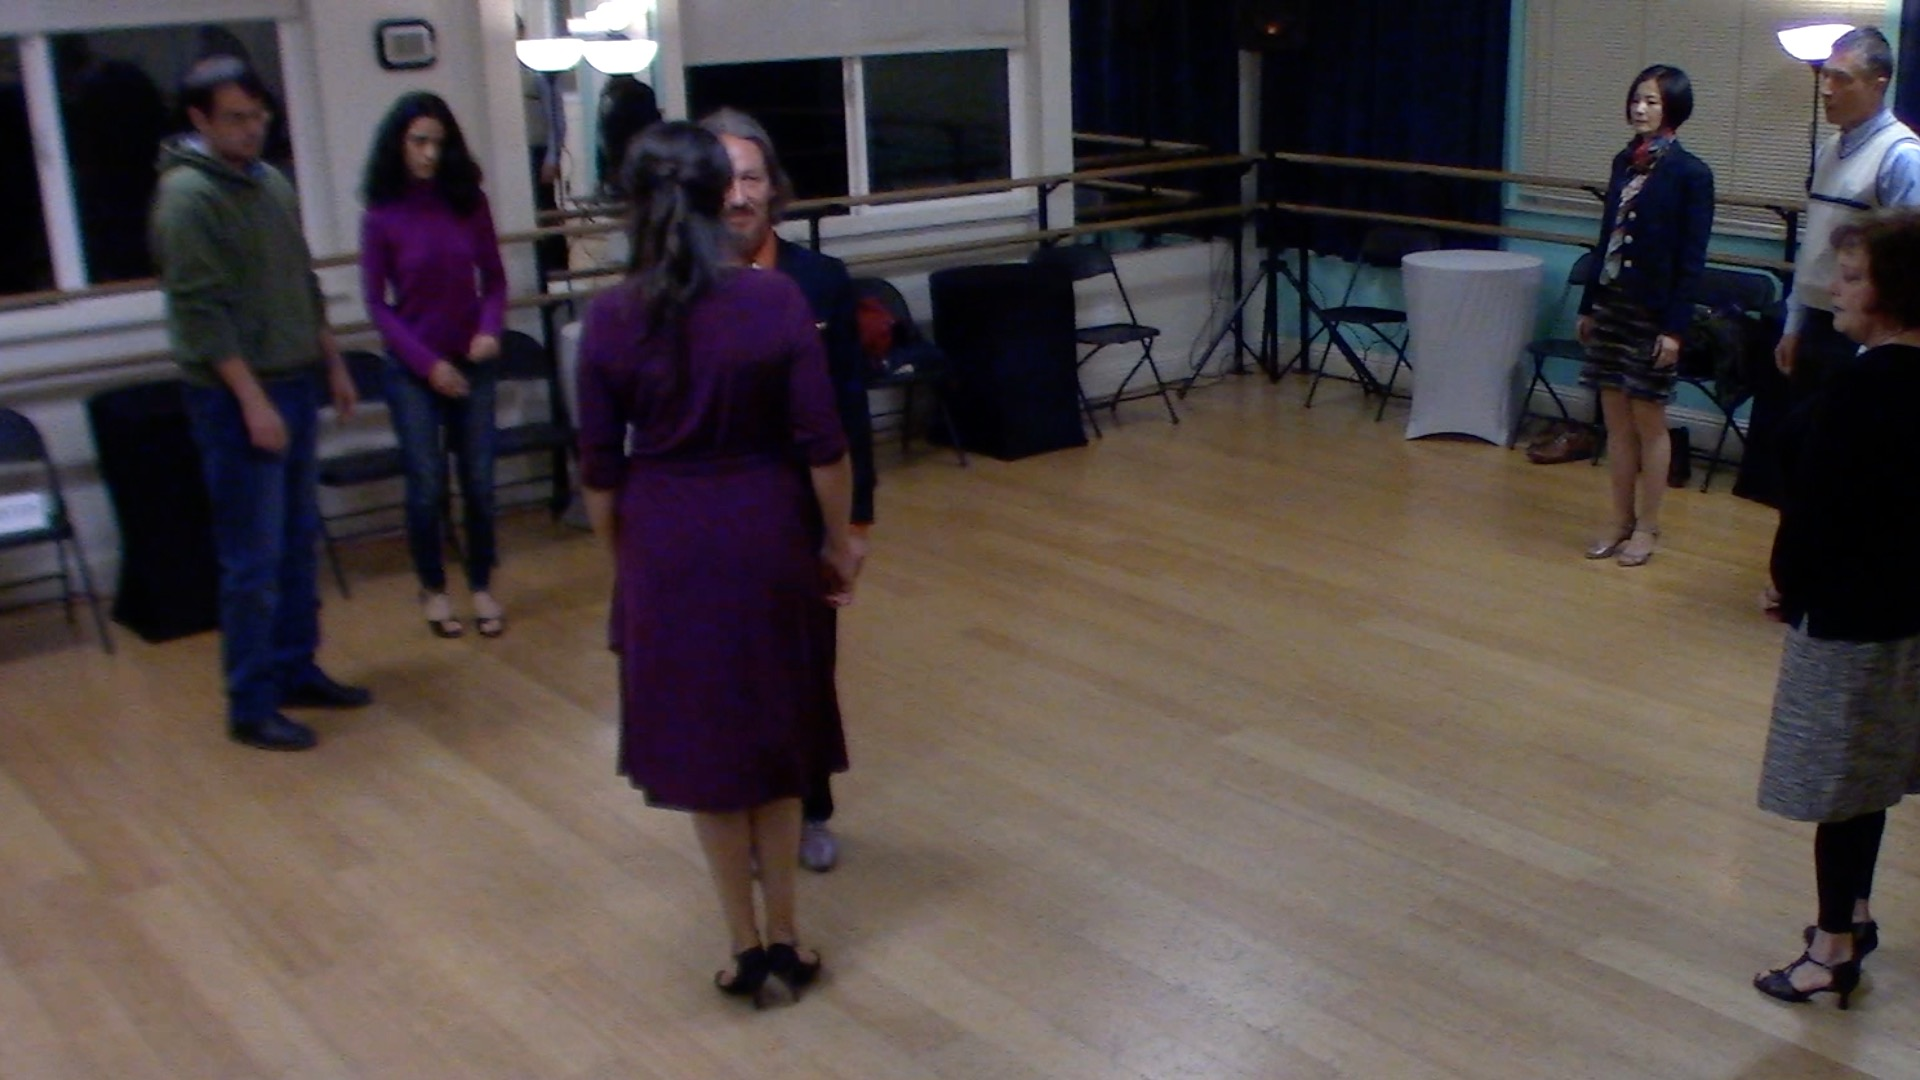 Argentine Tango beginner class with Mimi: connetion between partners' exercise